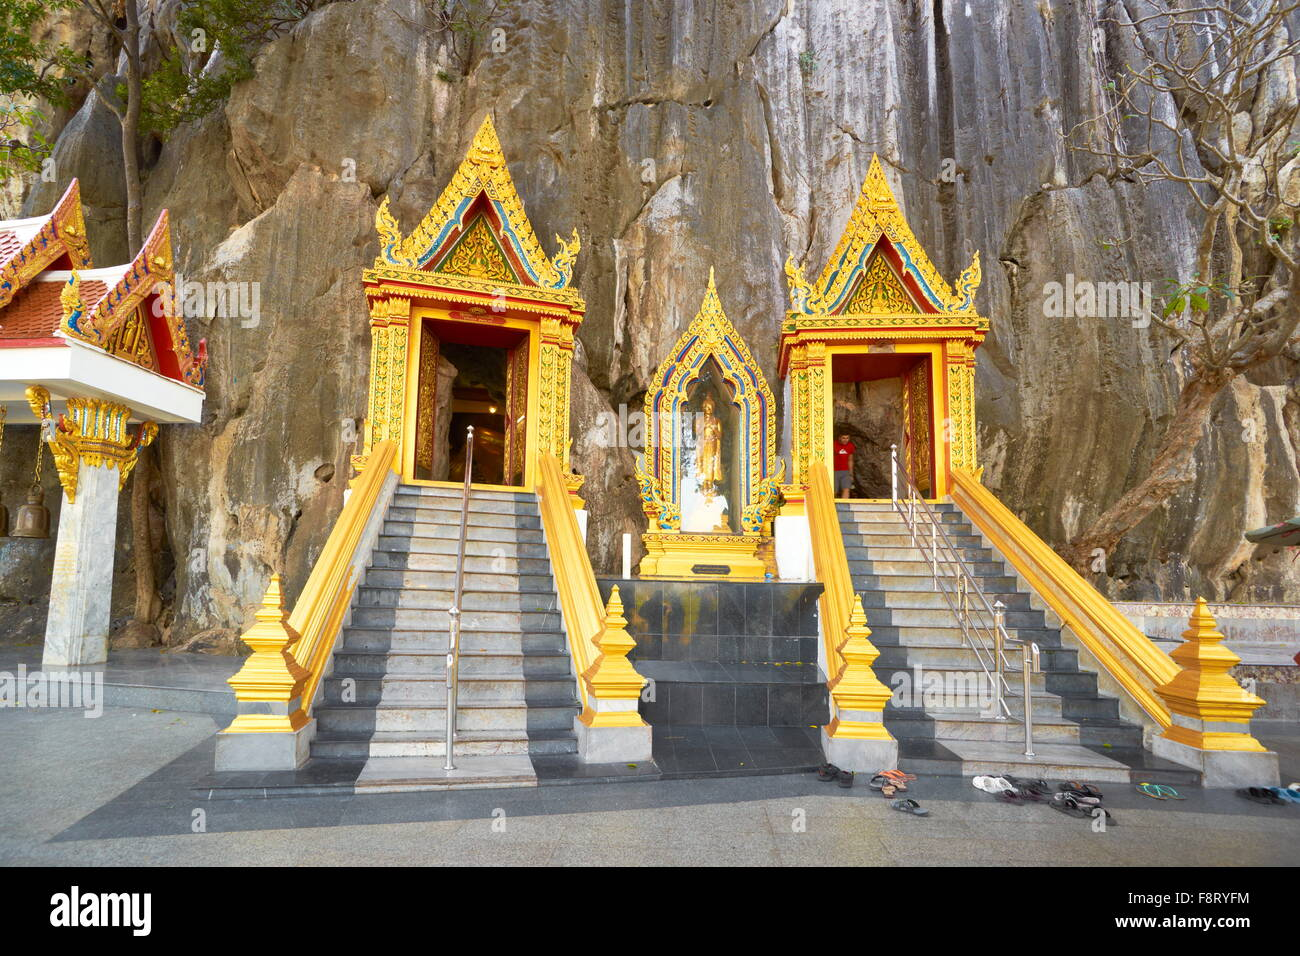 Thailand - Khao Yoi Buddhist Cave Temple, entrance to the cave - Stock Image